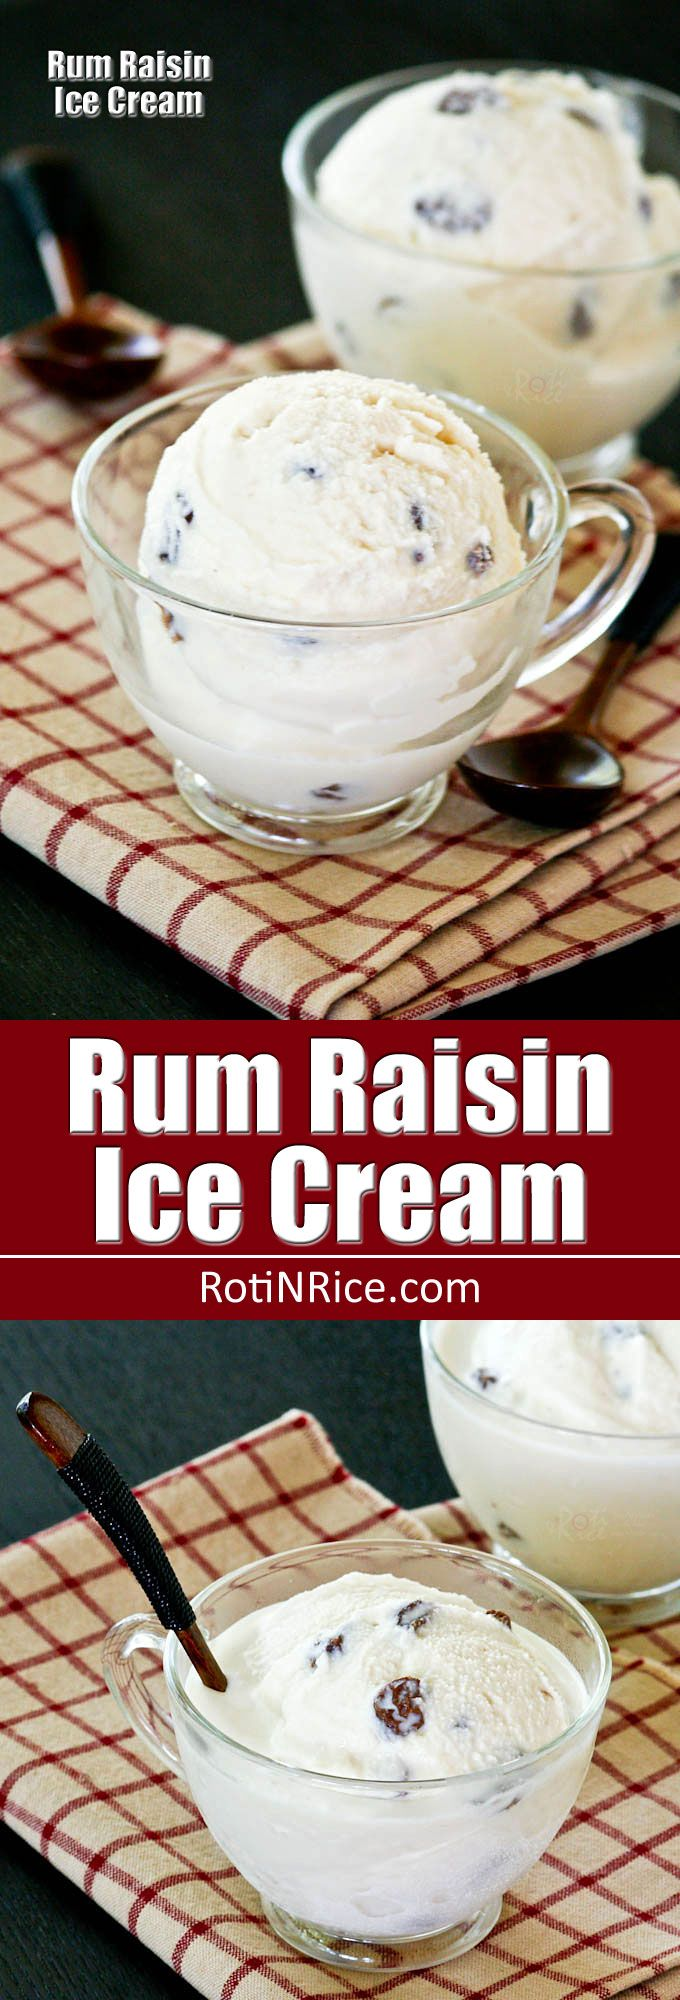 A creamy and luscious summer treat for the adults. This eggless soft serve Rum Raisin Ice Cream is flavored with vanilla and real rum. | RotiNRice.com